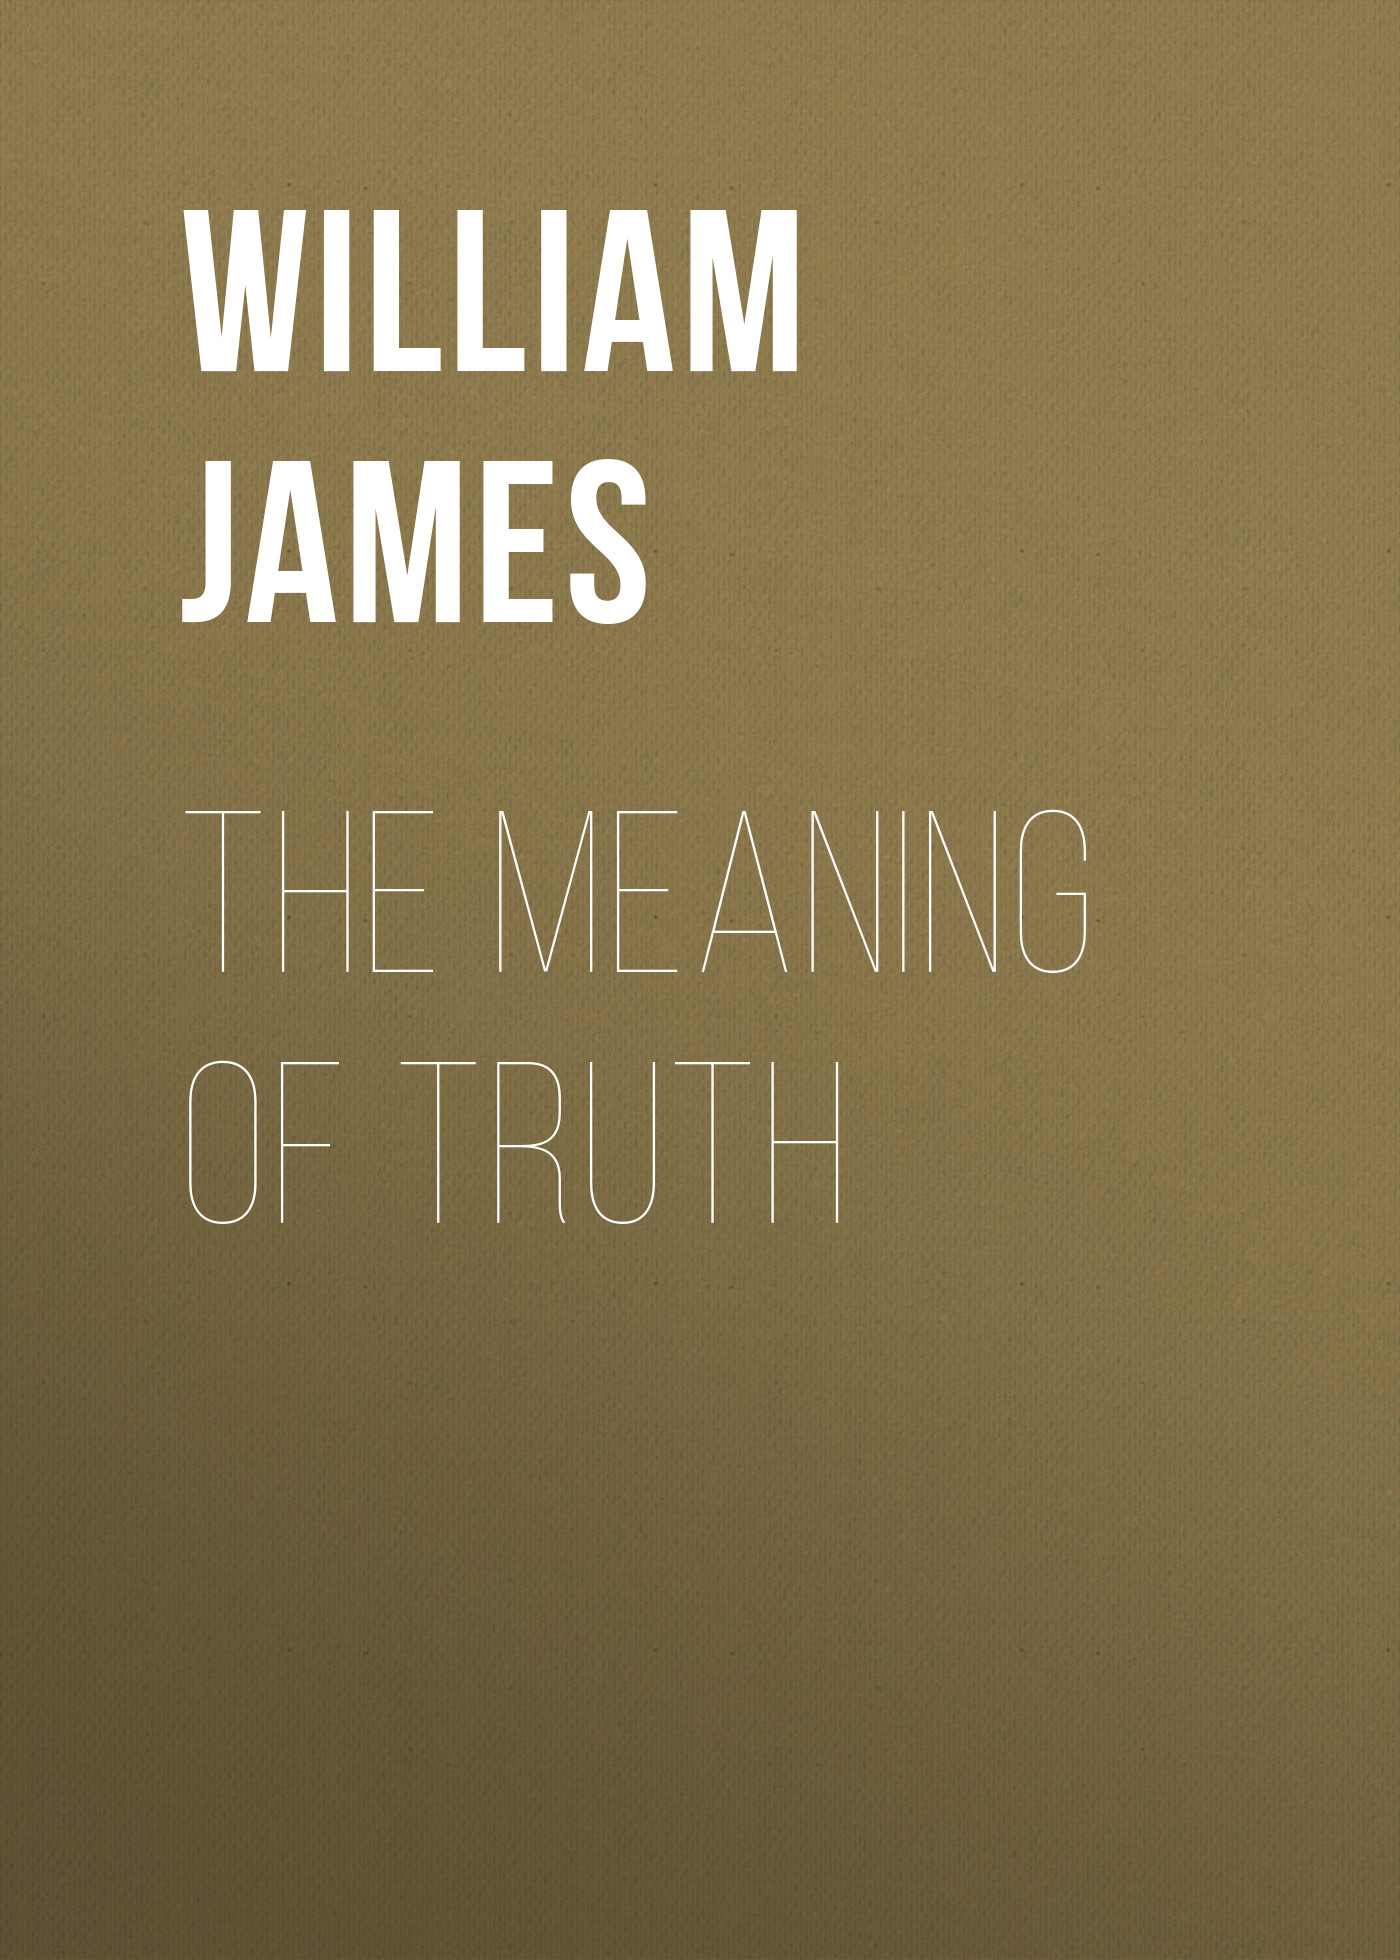 William James The Meaning of Truth william james the letters of william james vol 2